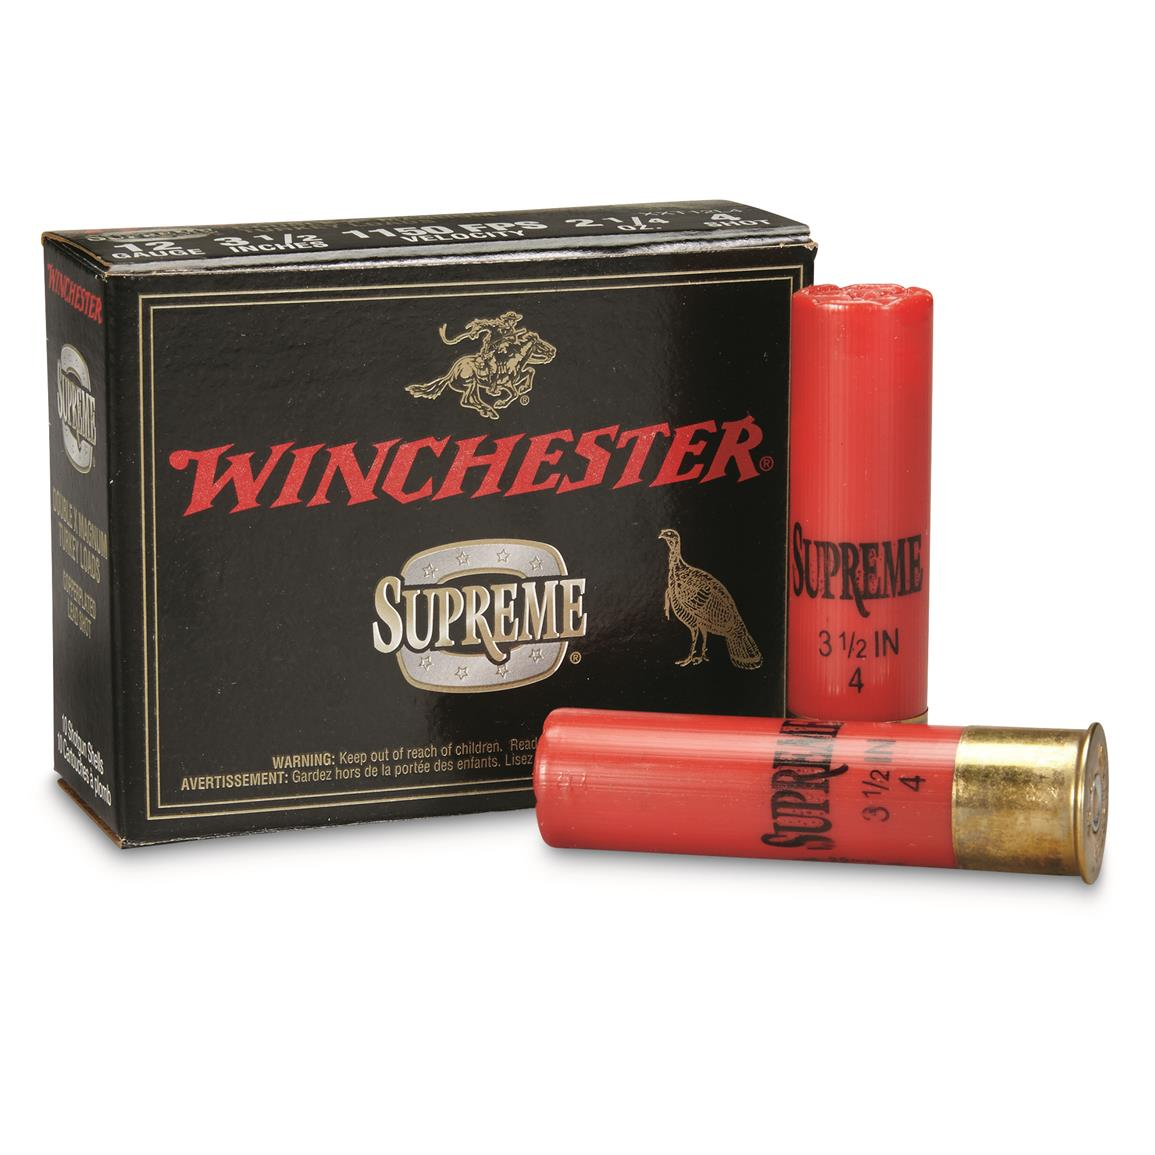 "Winchester, 12 Gauge, 3 1/2"", 2 1/4 oz., Supreme Double X Magnum Copper Plated Turkey Loads, 10 Rounds"